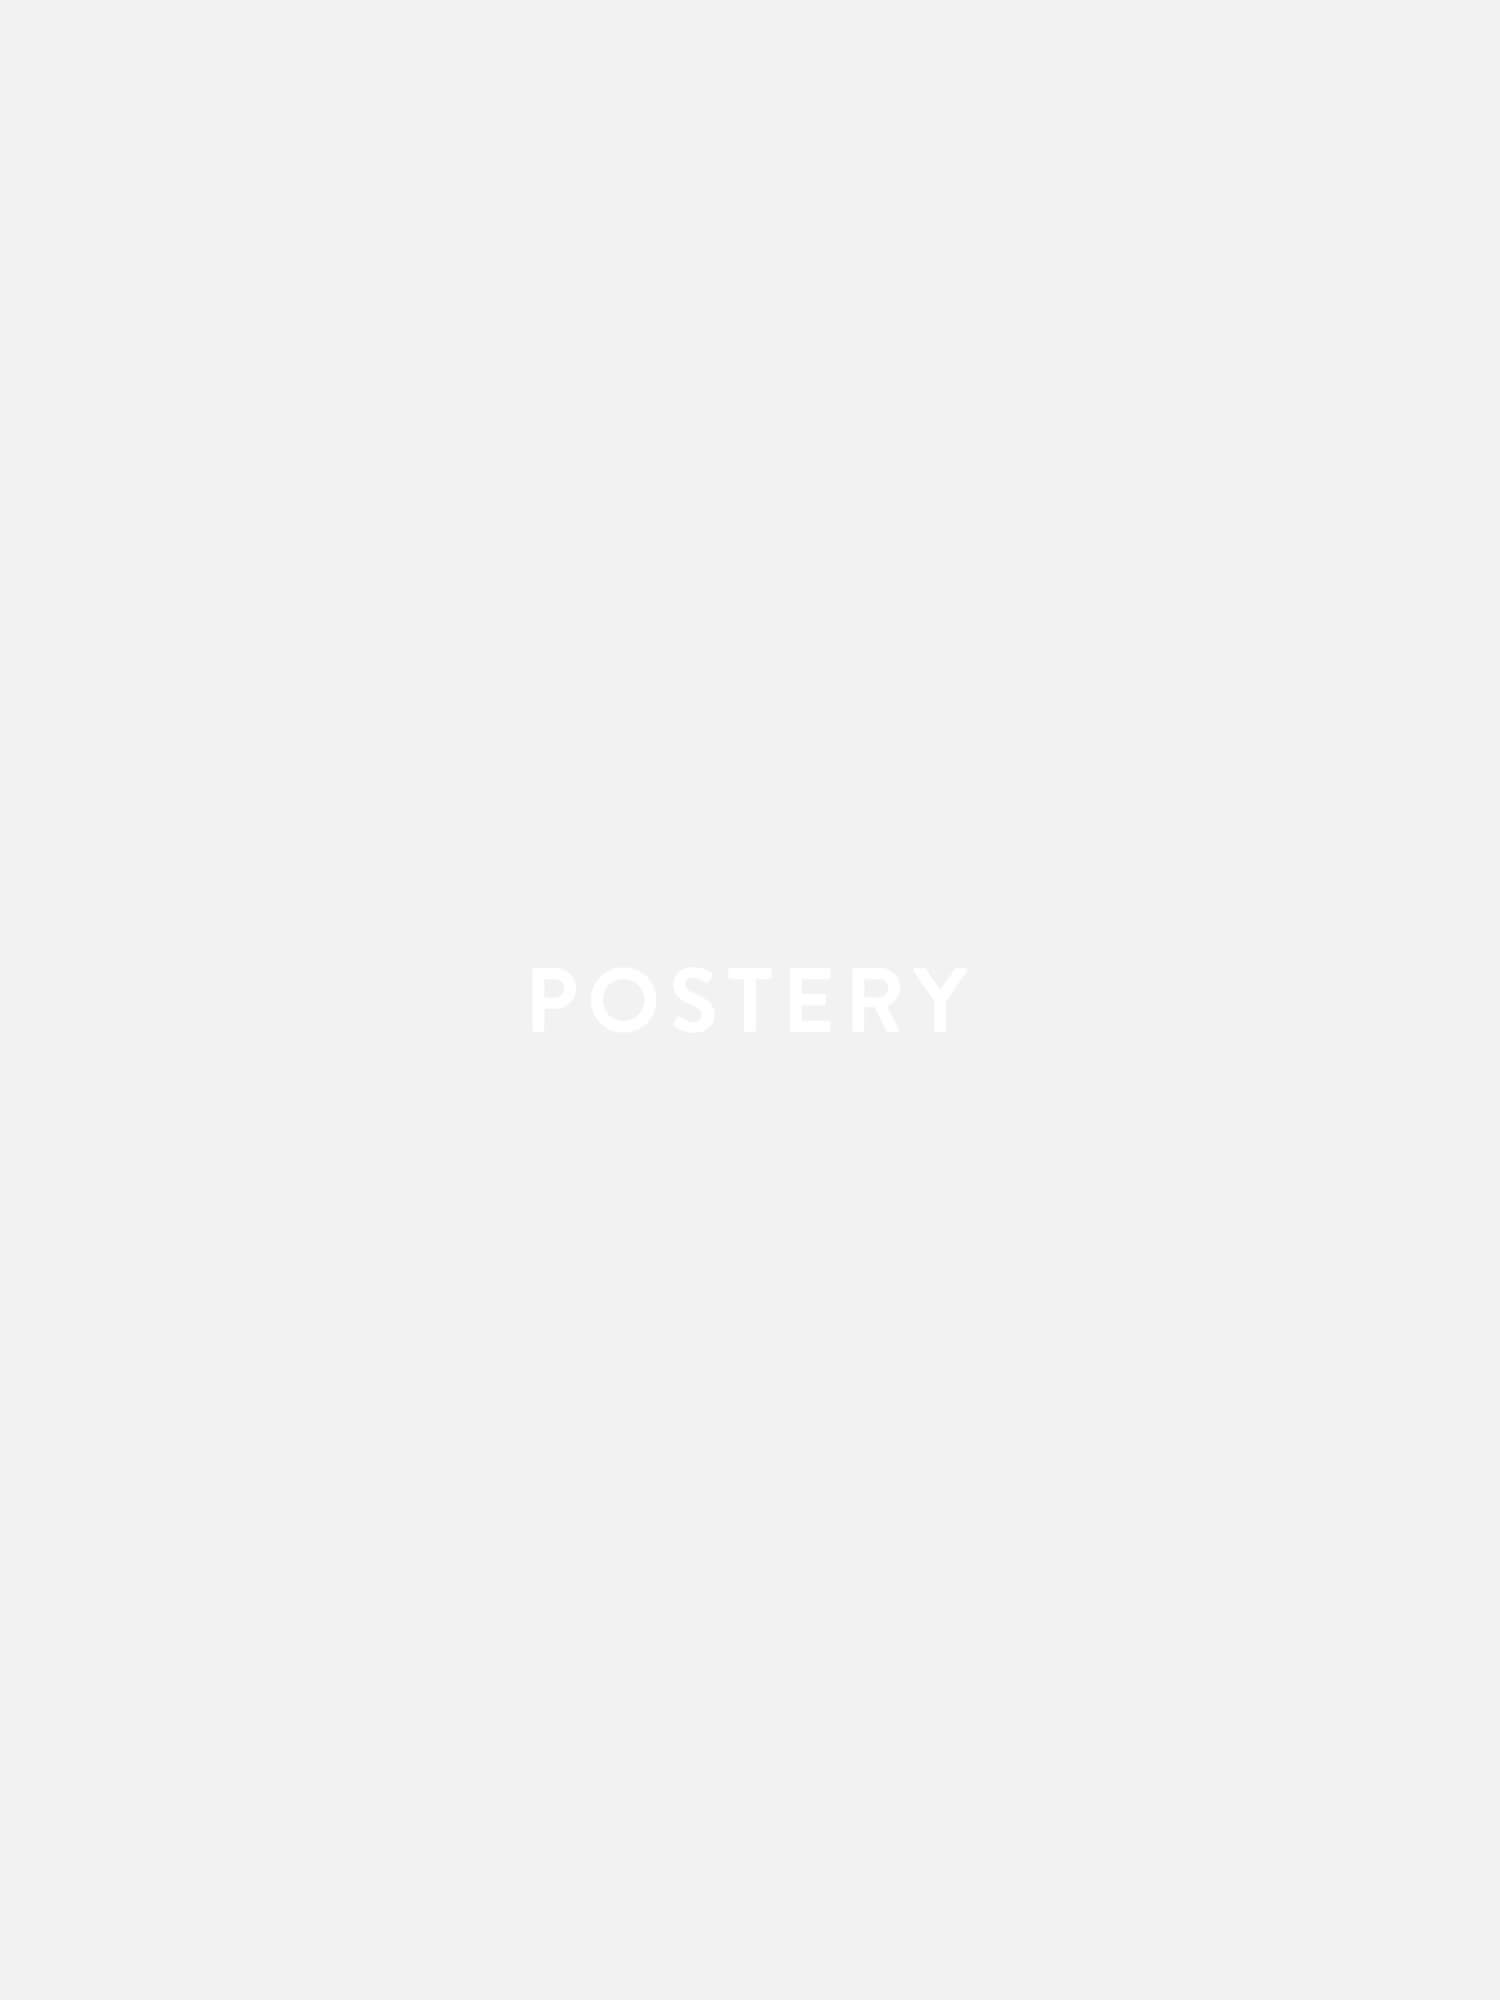 Green Cactus Poster